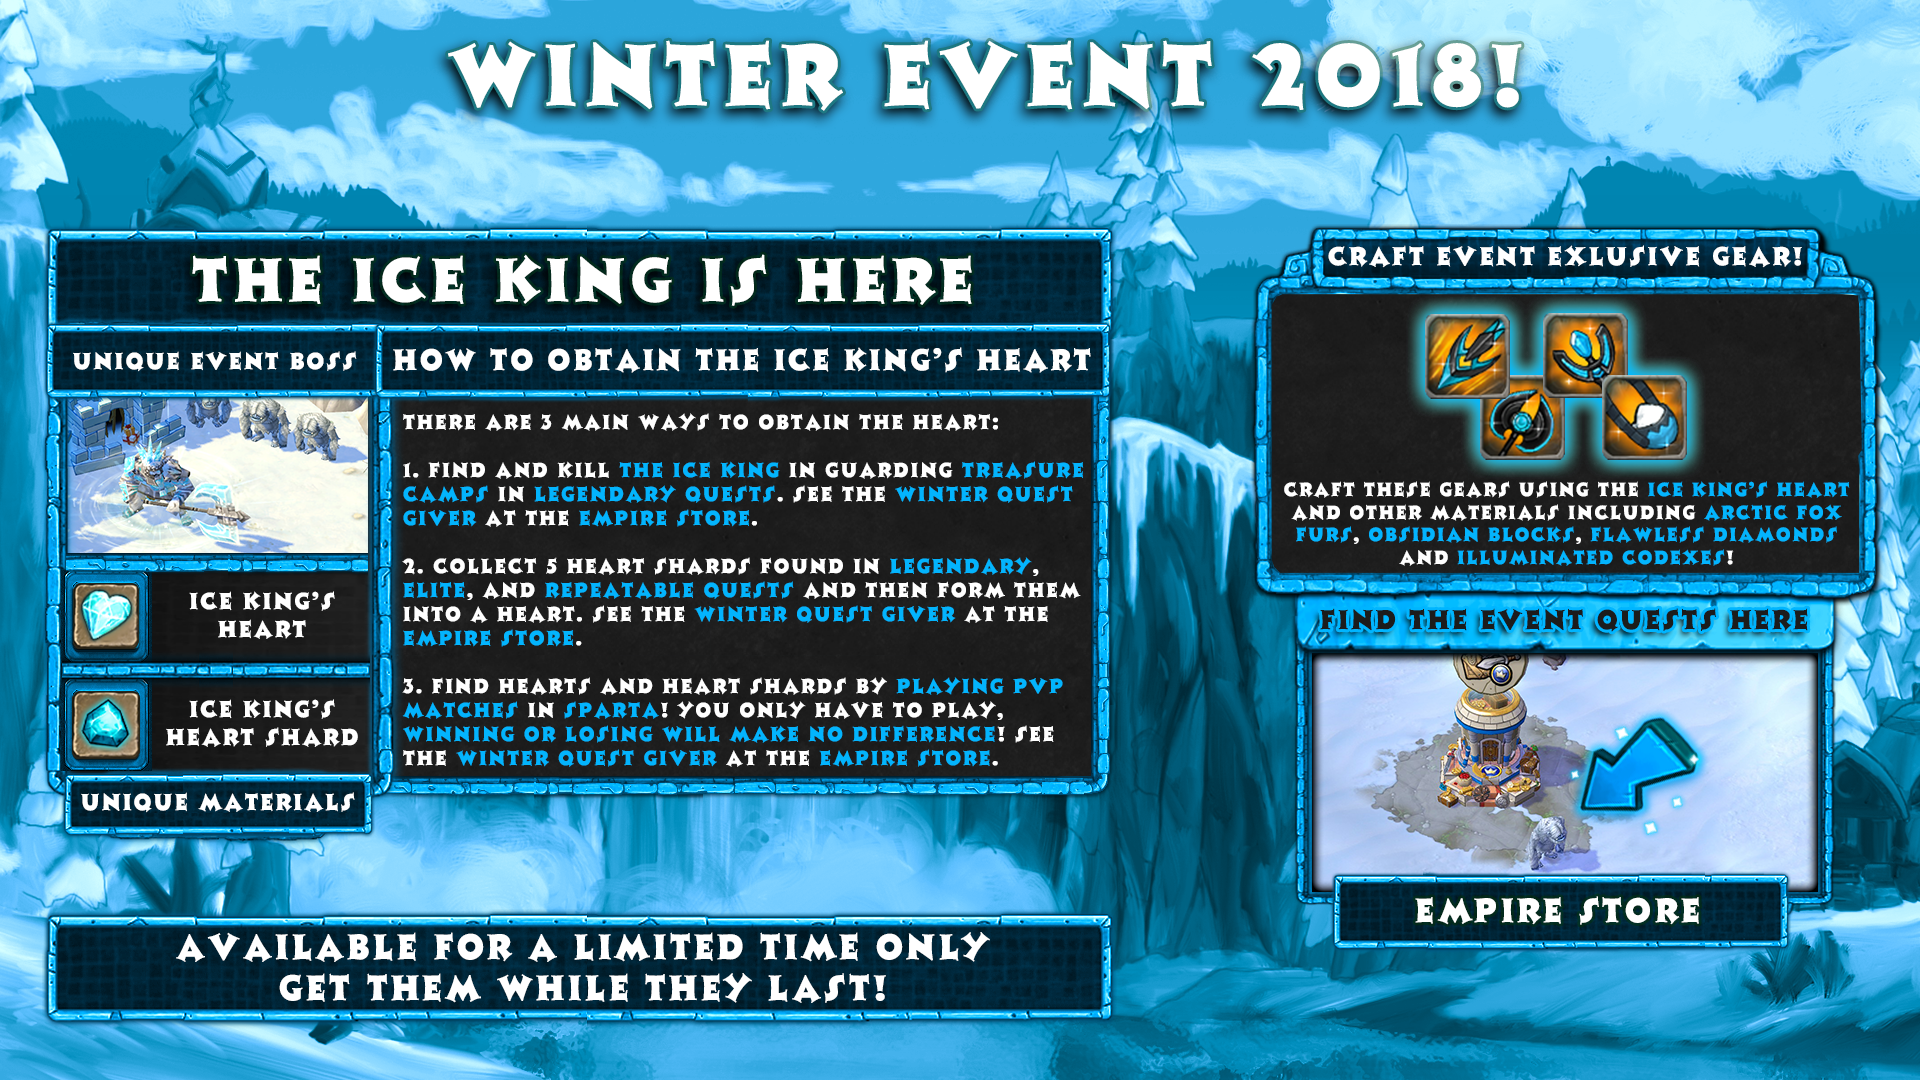 WinterEvent2018Announcement.png